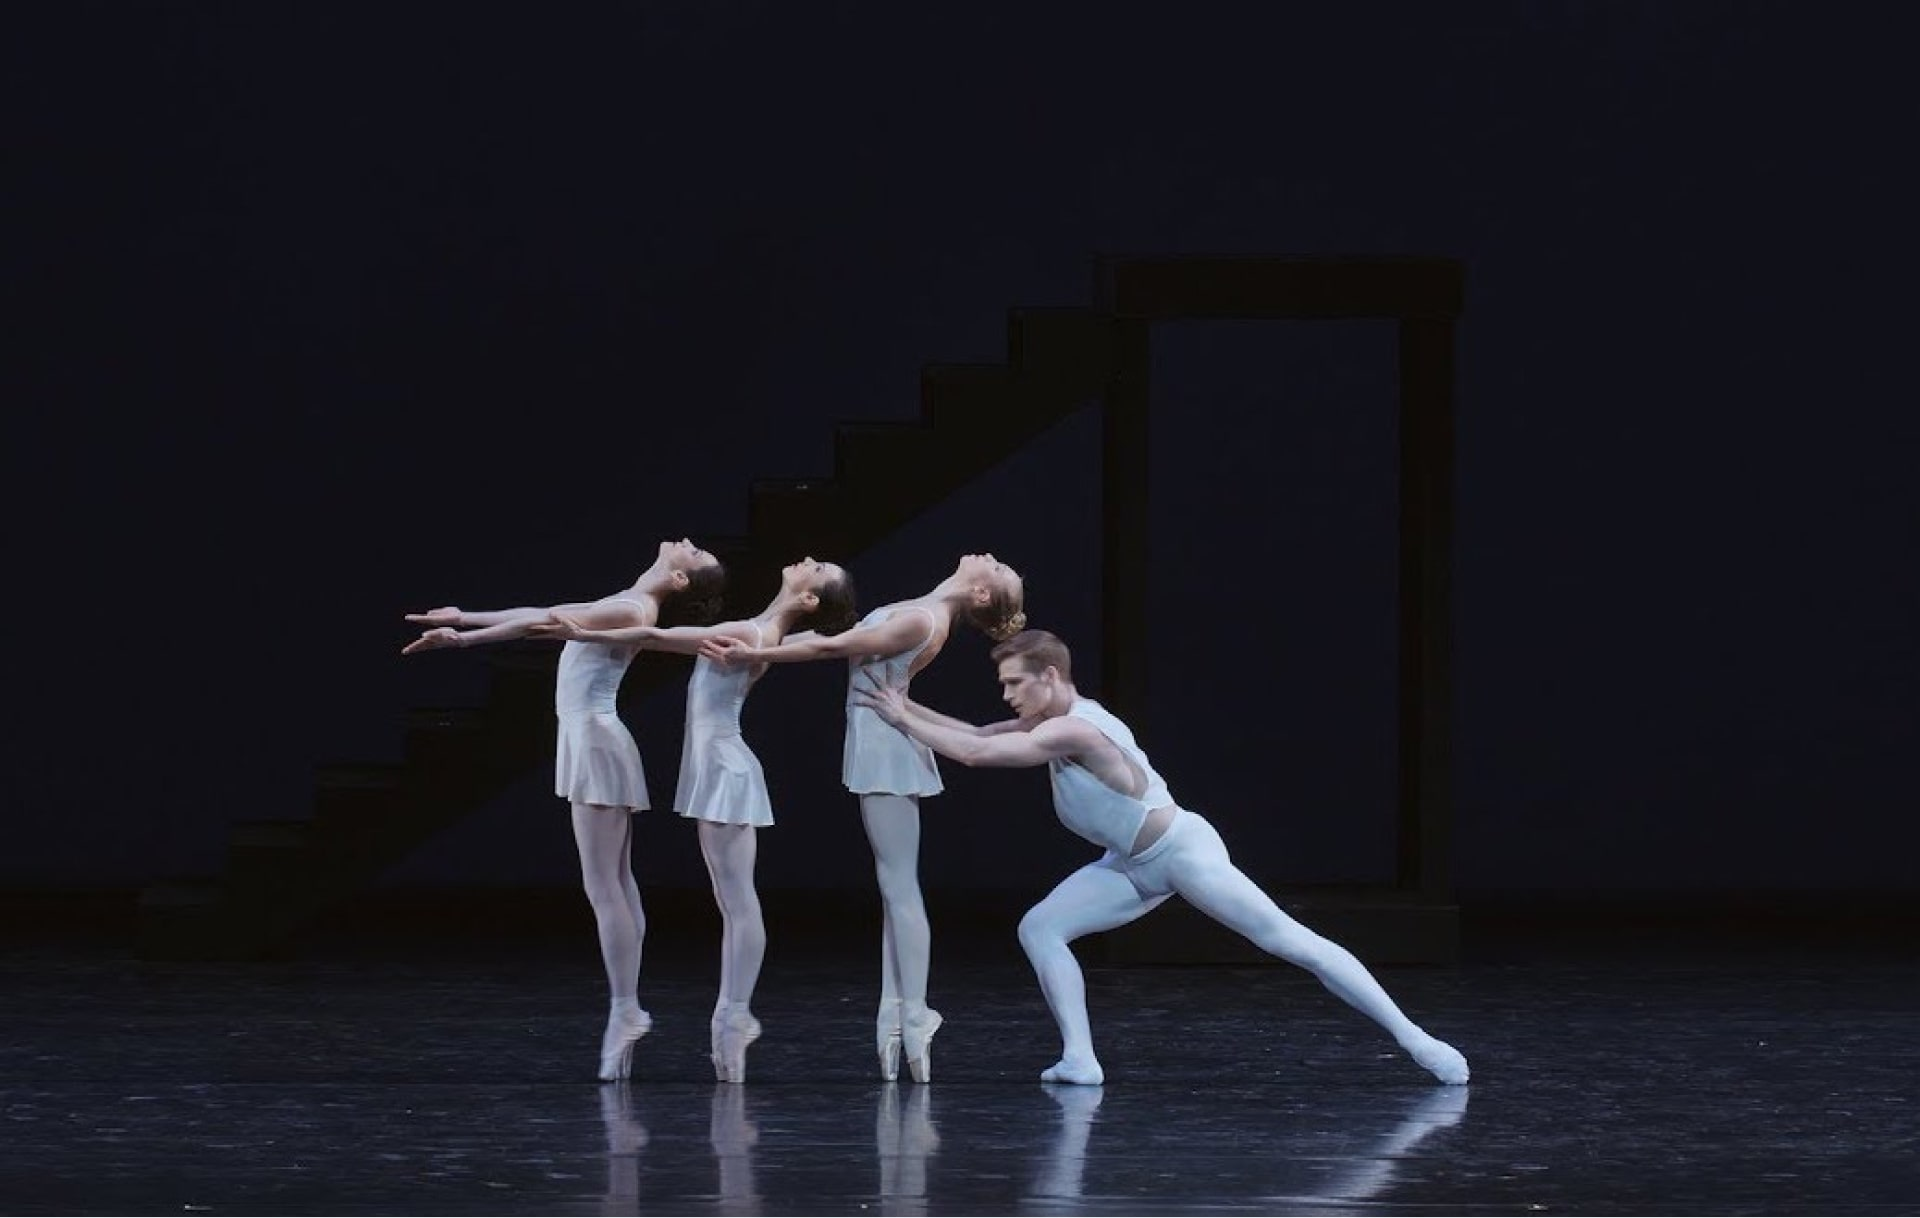 Bare-armed dancer in white tights steadies three ballerinas on point with outstretched arms.